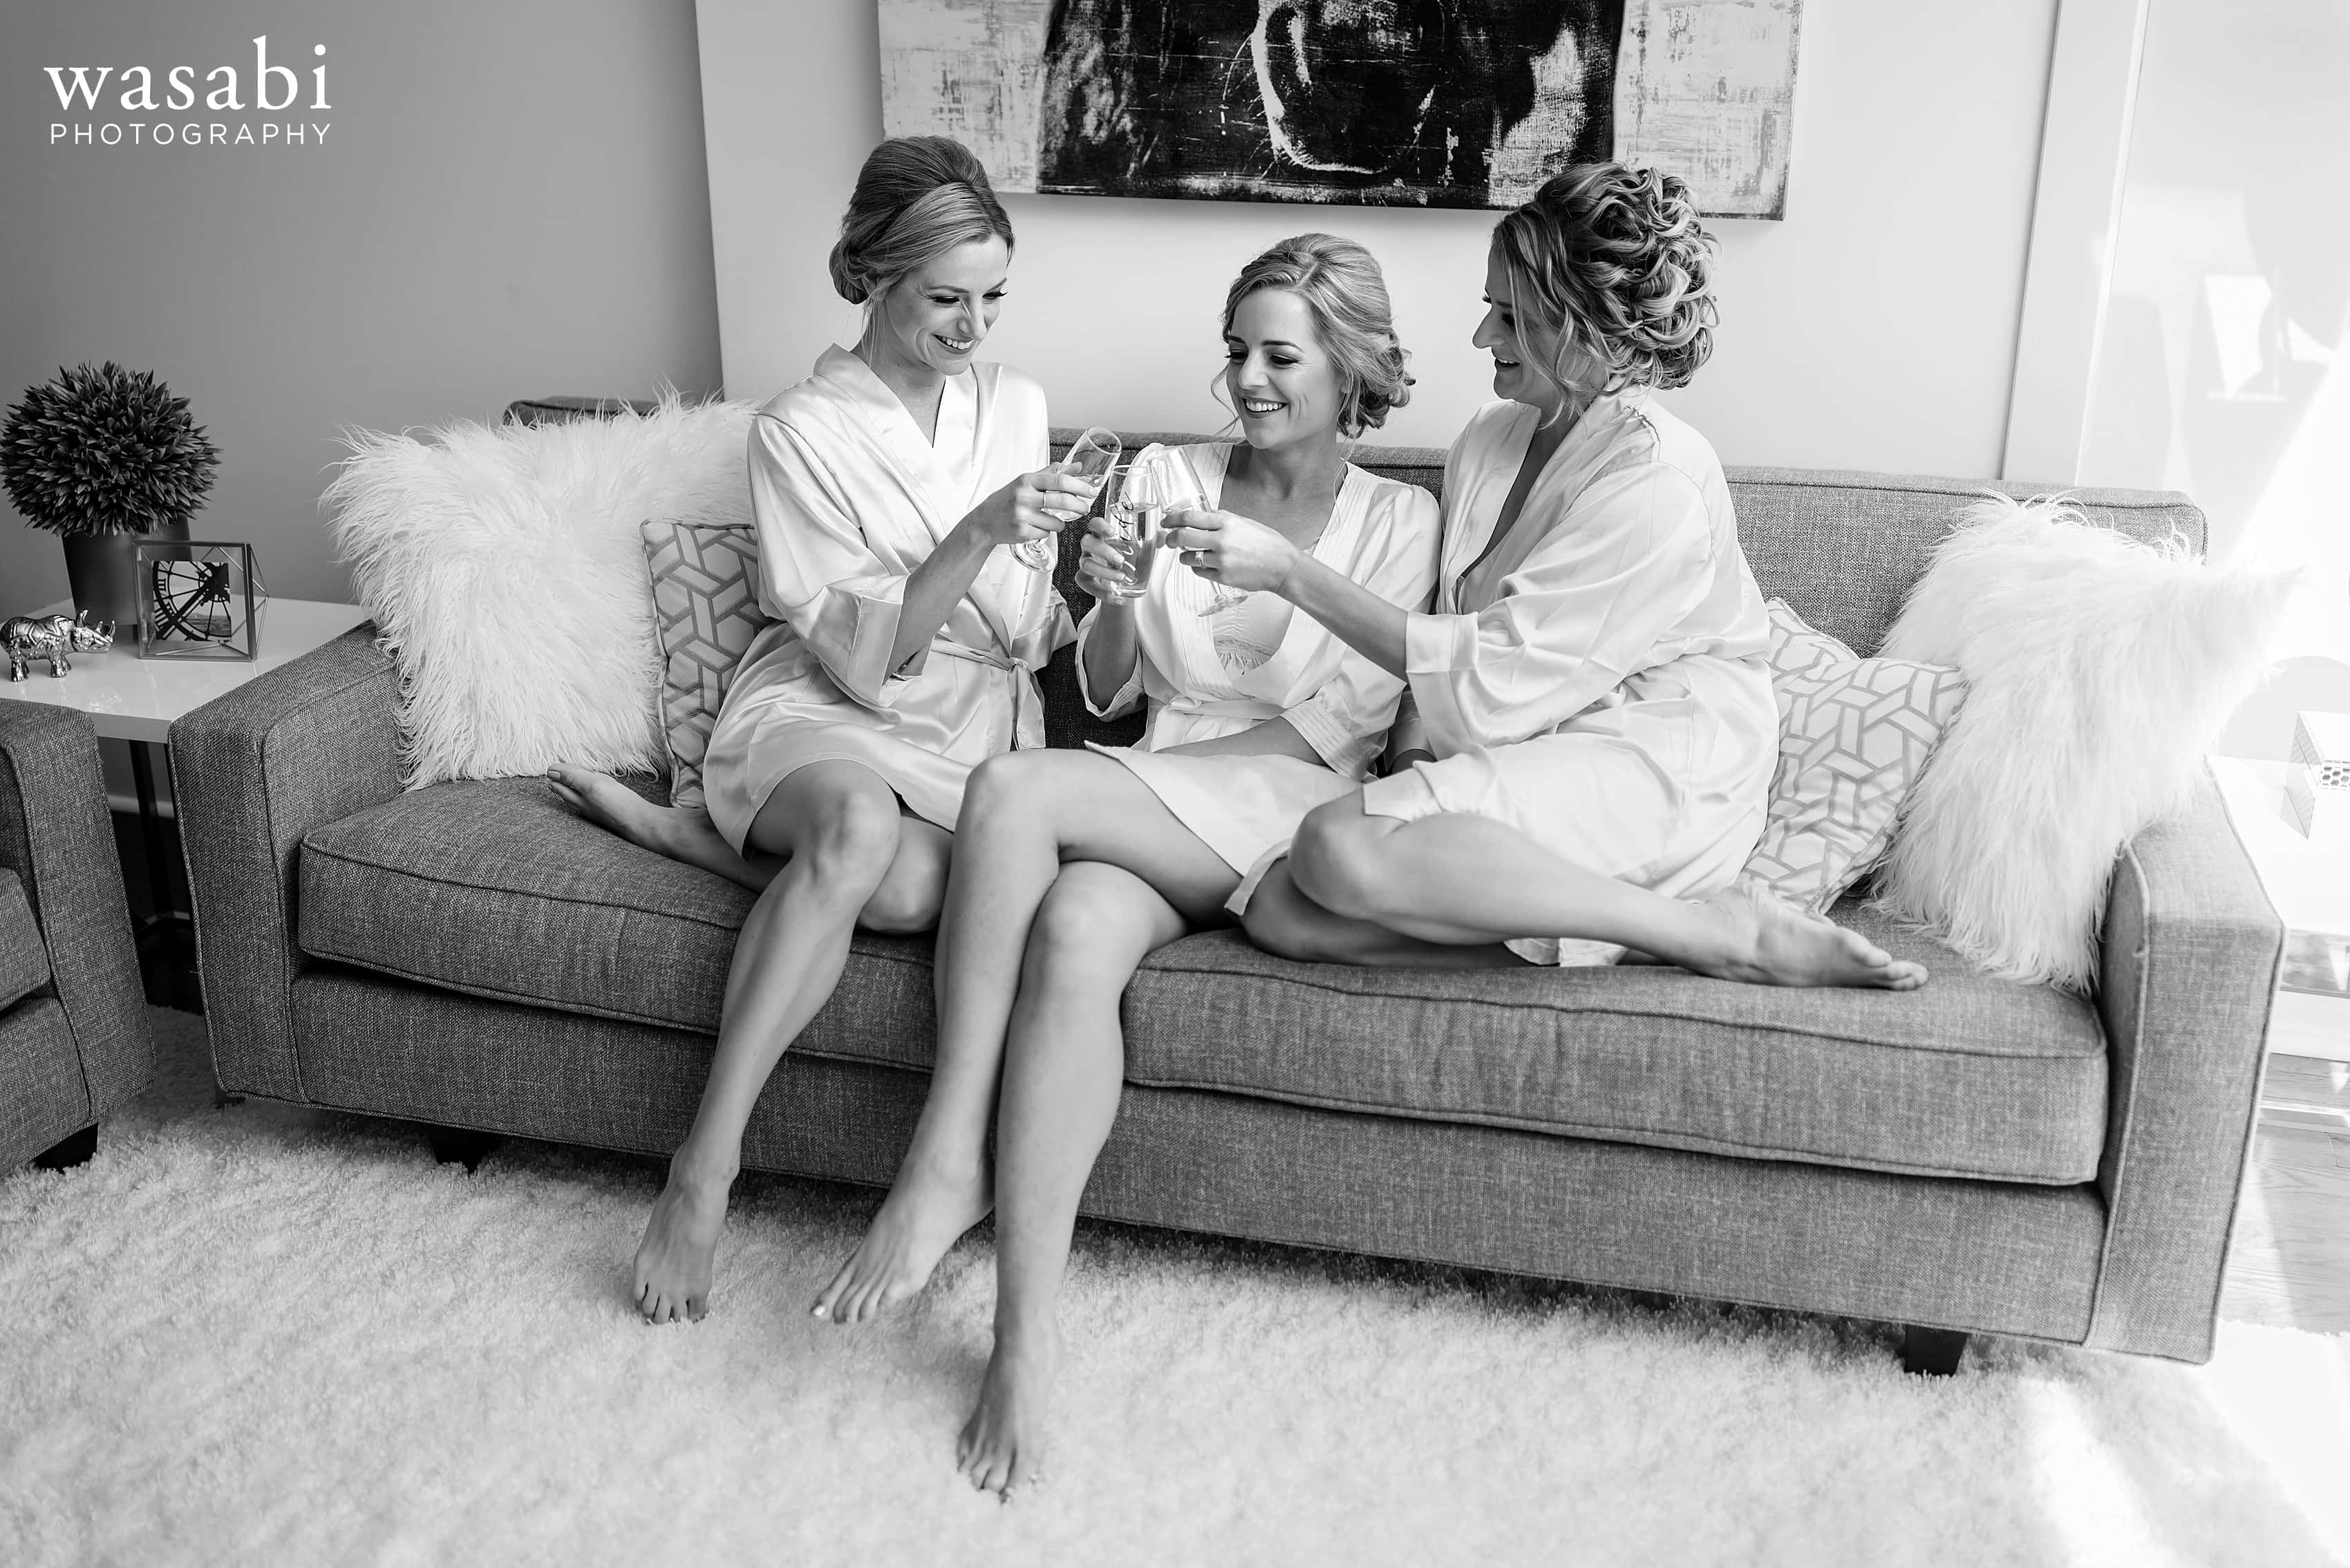 Bride and bridesmaids sisters toast on couch while getting ready for a wedding at home